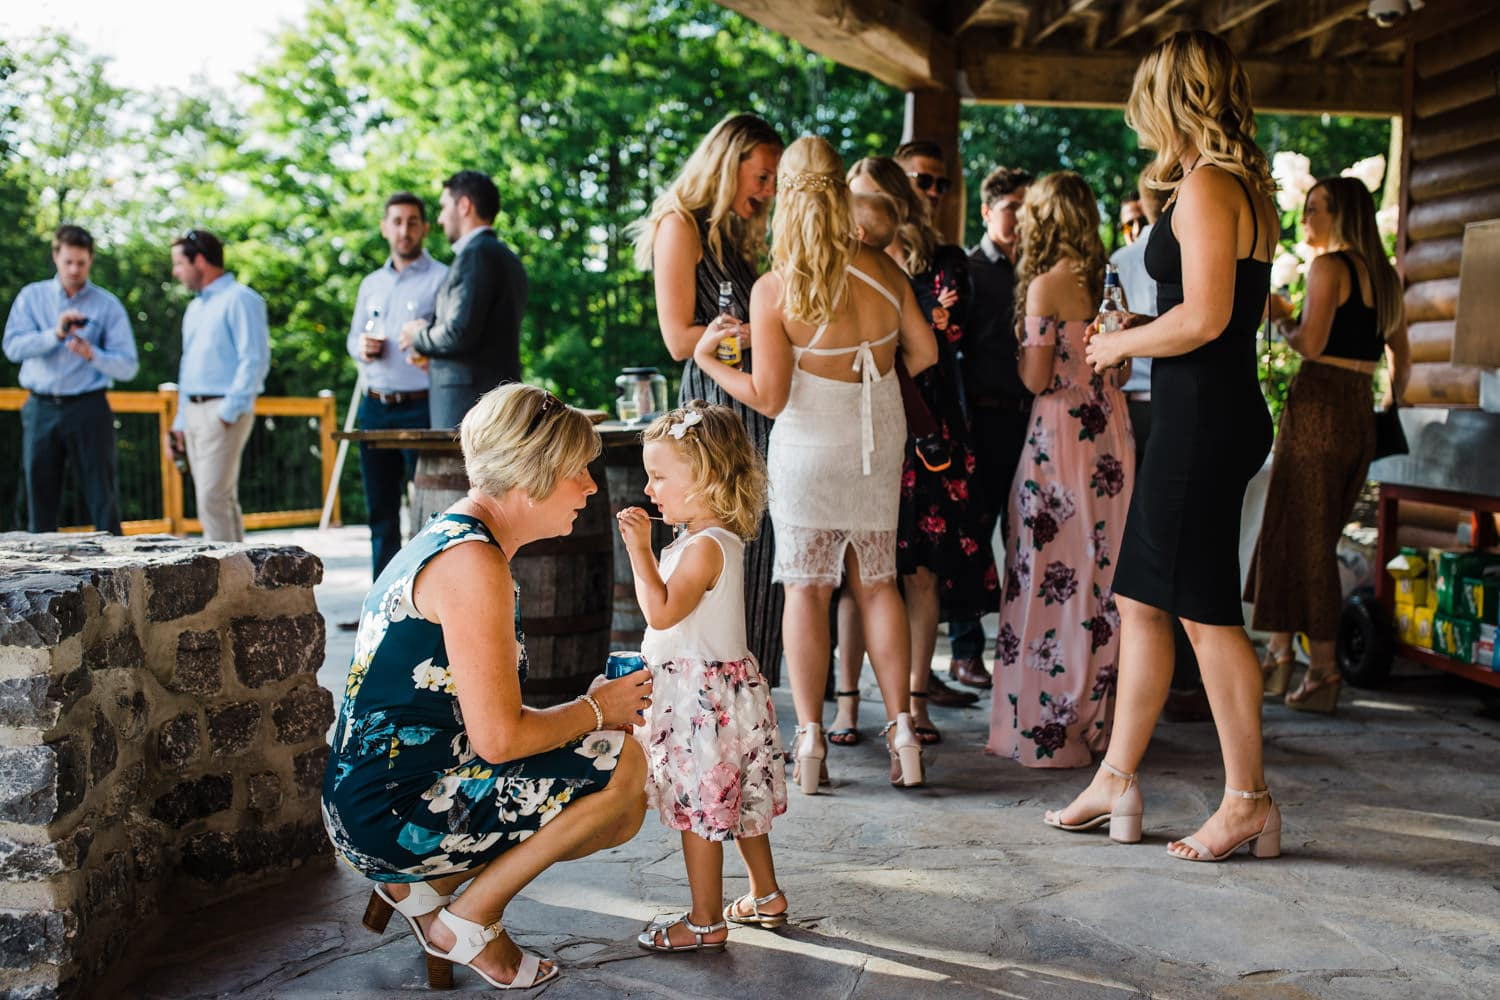 guests mingle on stone patio at outdoor wedding